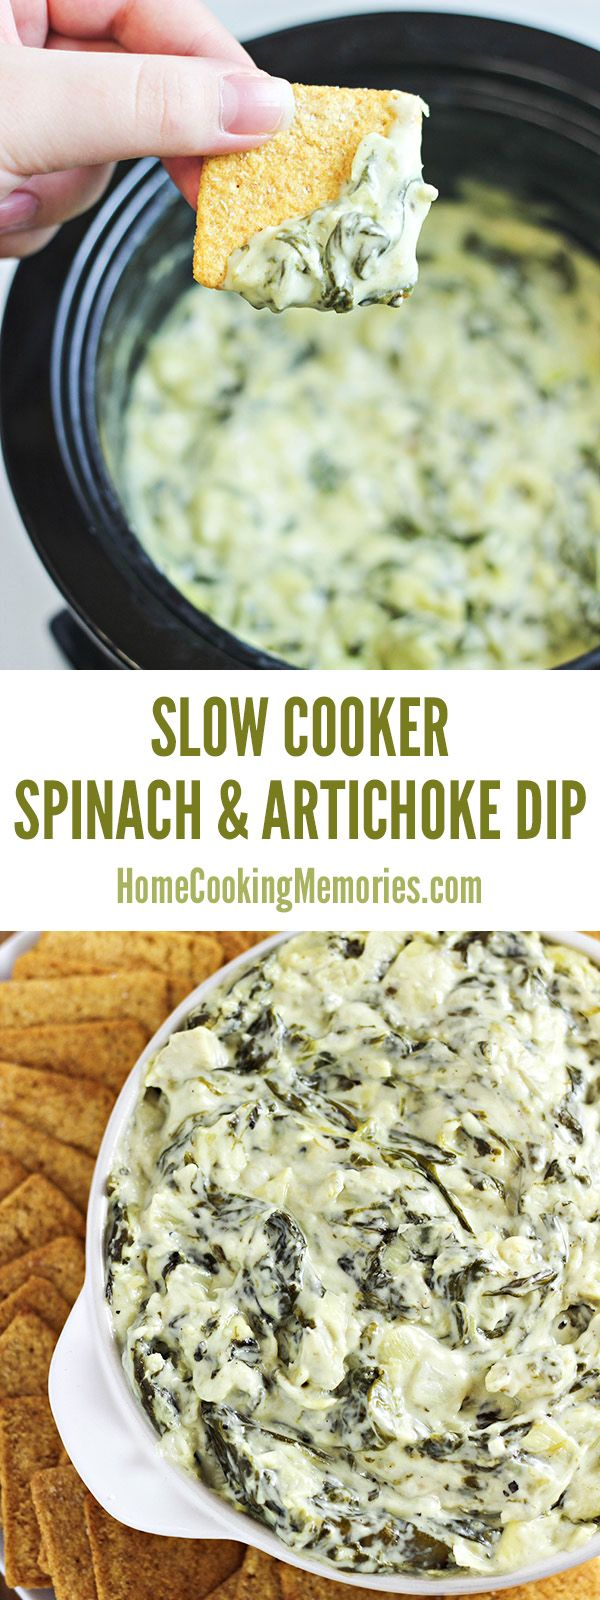 This delicious Slow Cooker Spinach and Artichoke Dip recipe is easy and cheesy! It's a hot dip made right in your crockpot, no oven needed. Perfect for summer parties and potlucks.